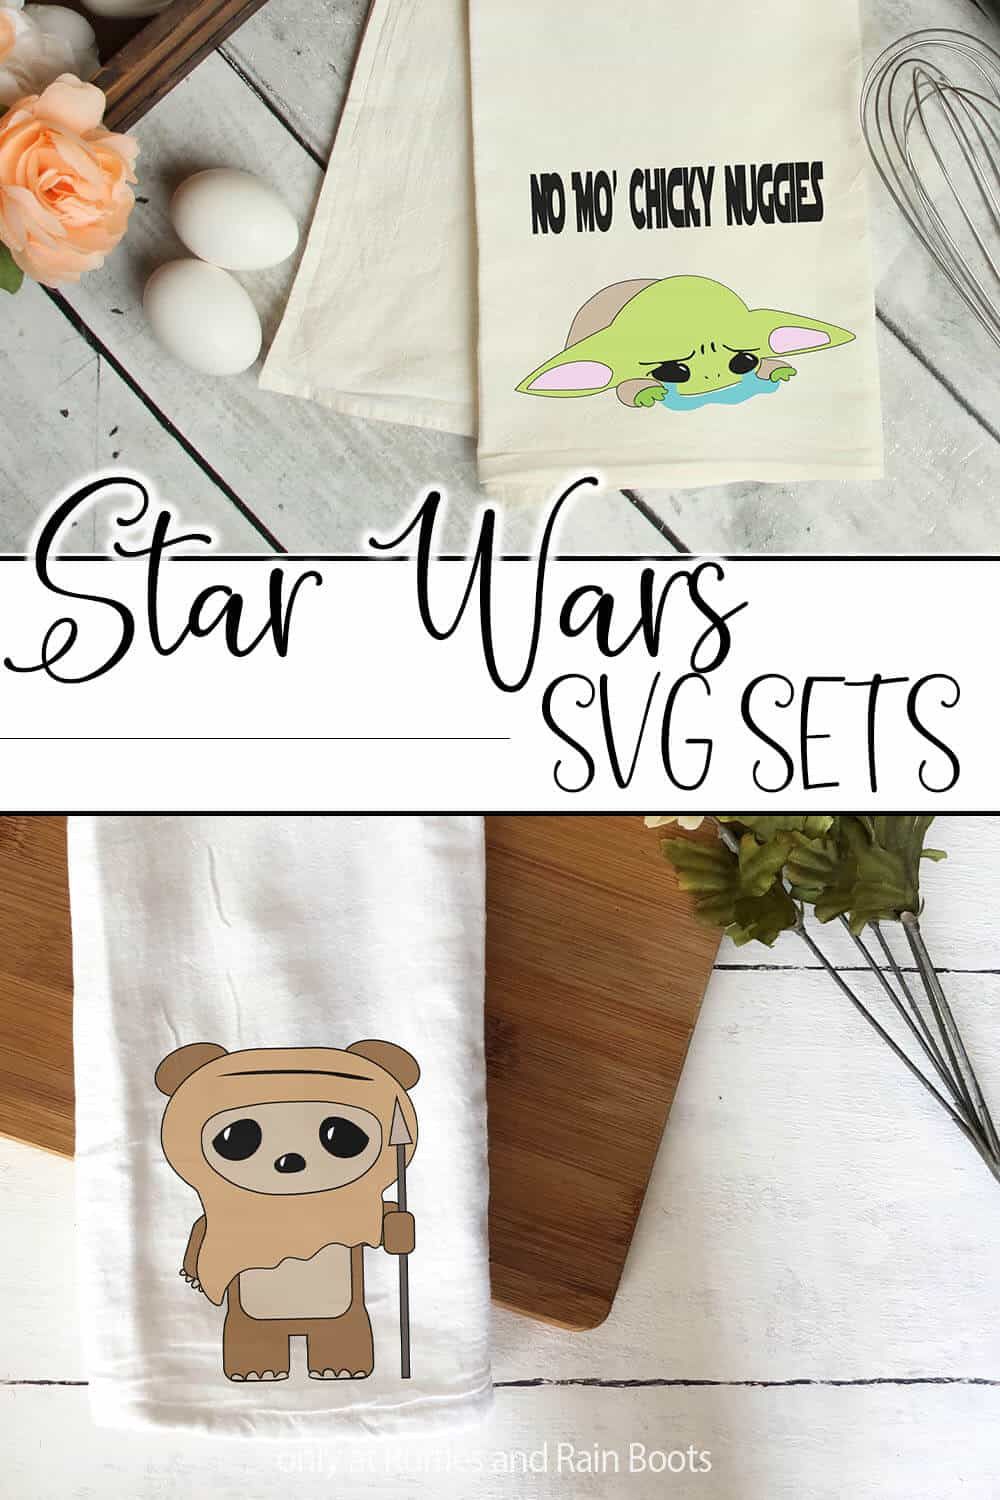 This May The 4th Free Svg Set Is The Best Star Wars Cut File Set